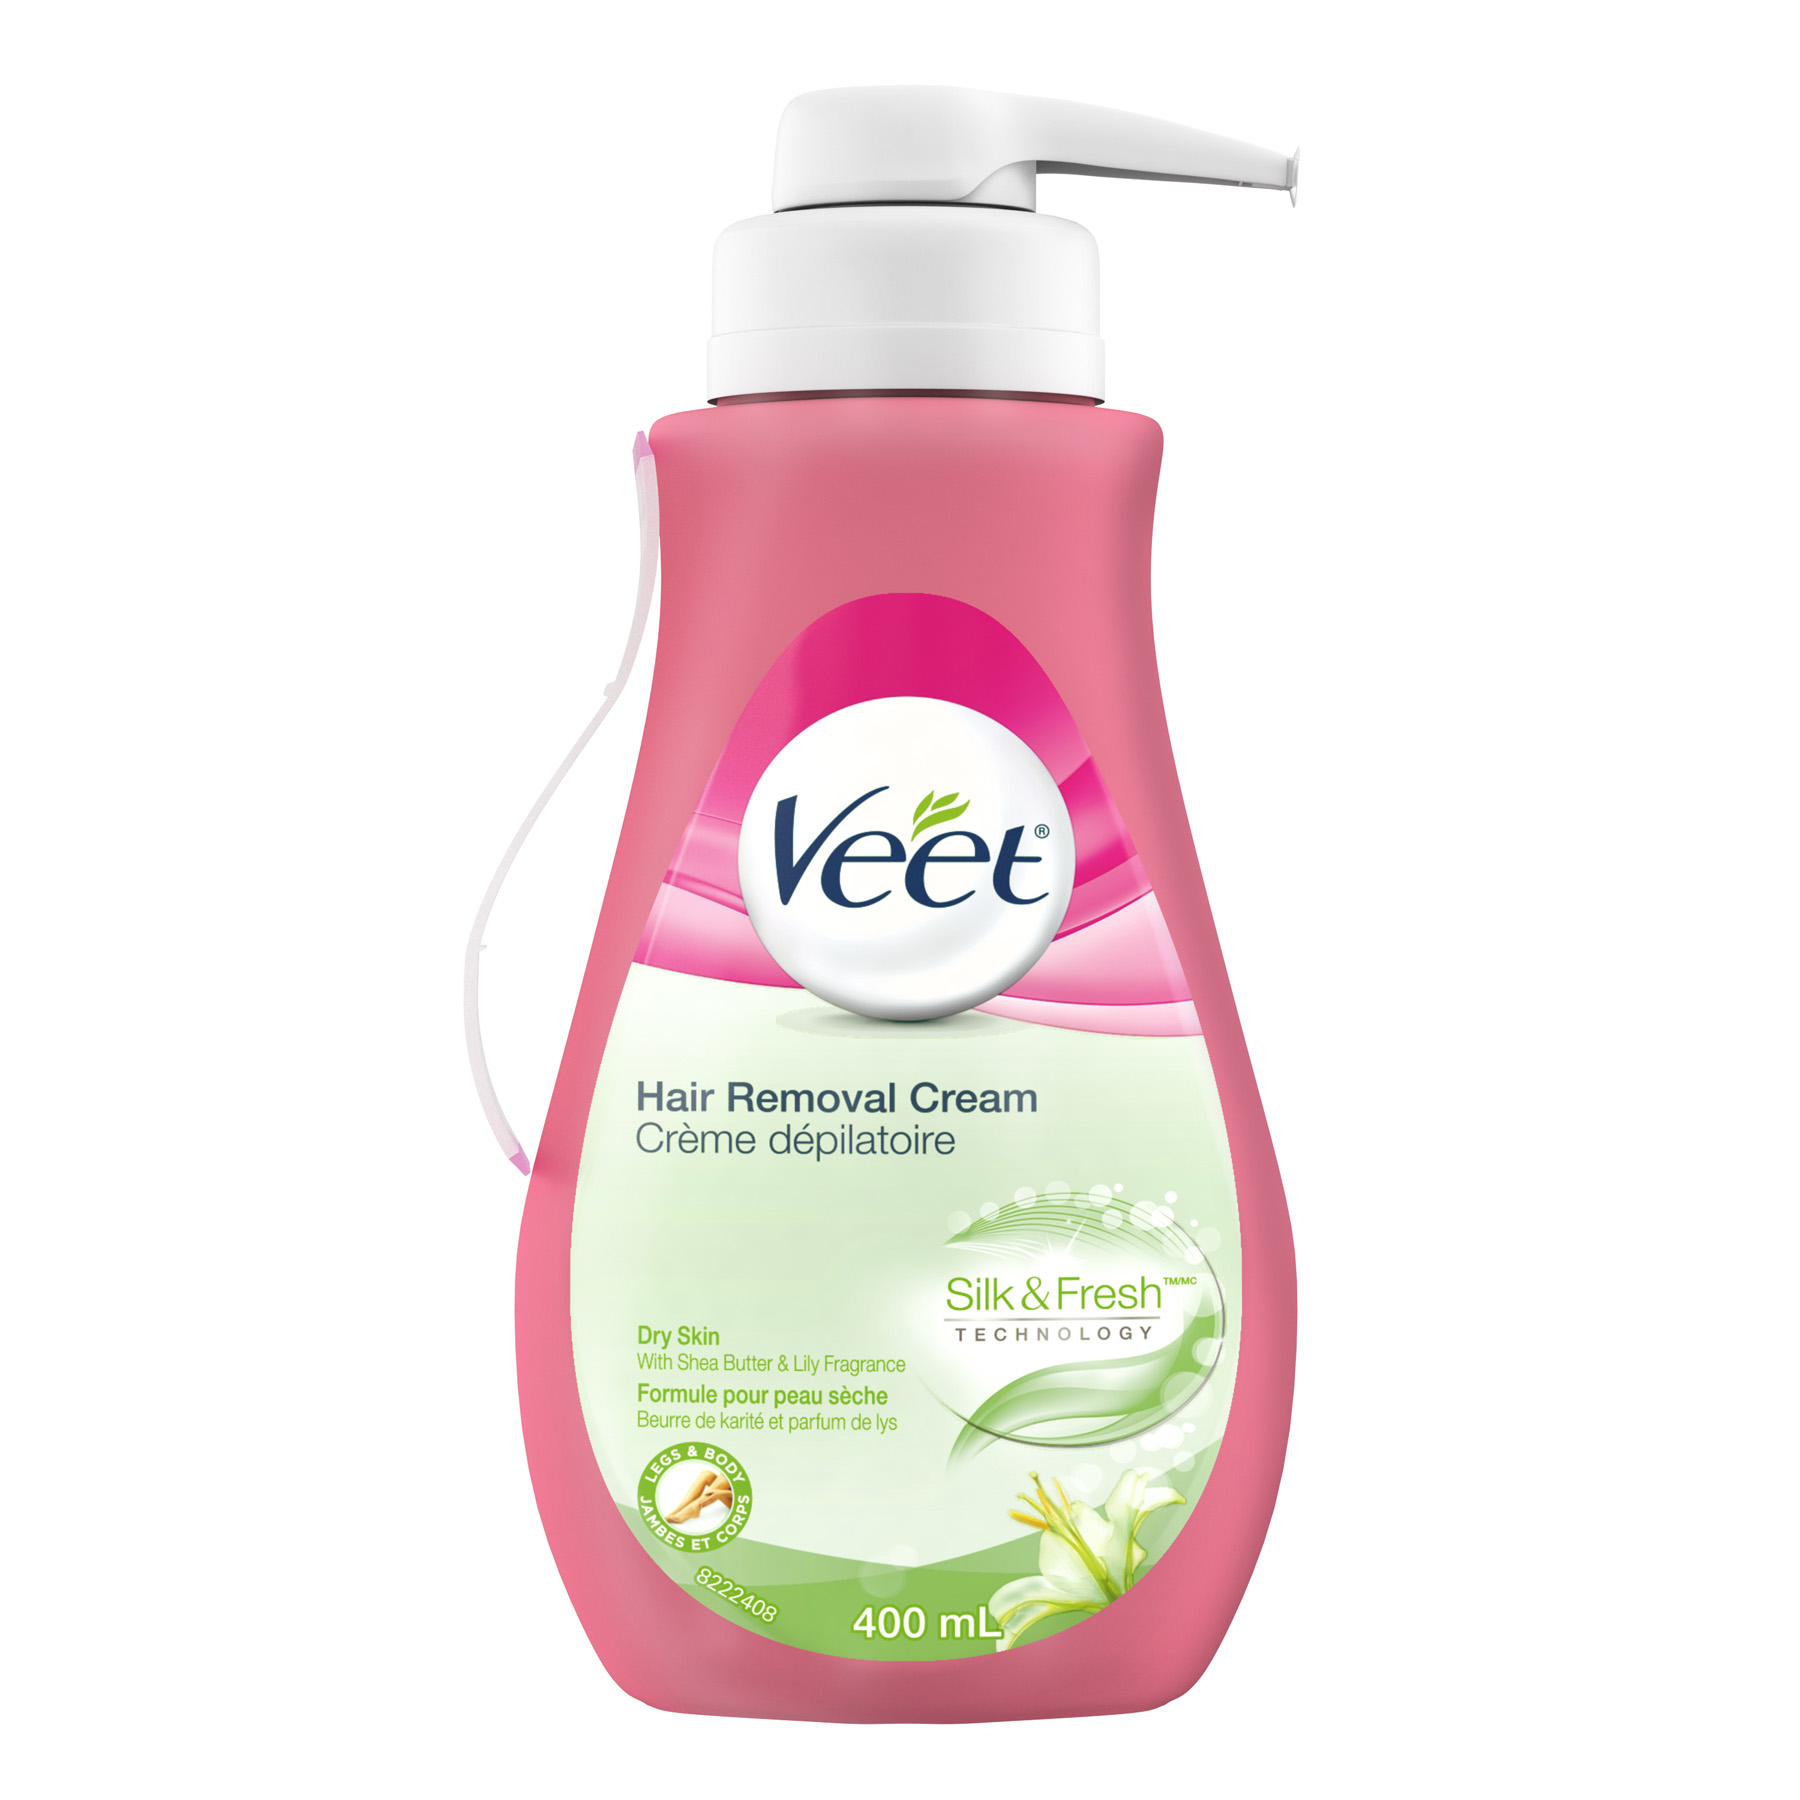 VEET® Hair Removal Gel Cream for Dry Skin - Shea Butter & Lily (Pump)